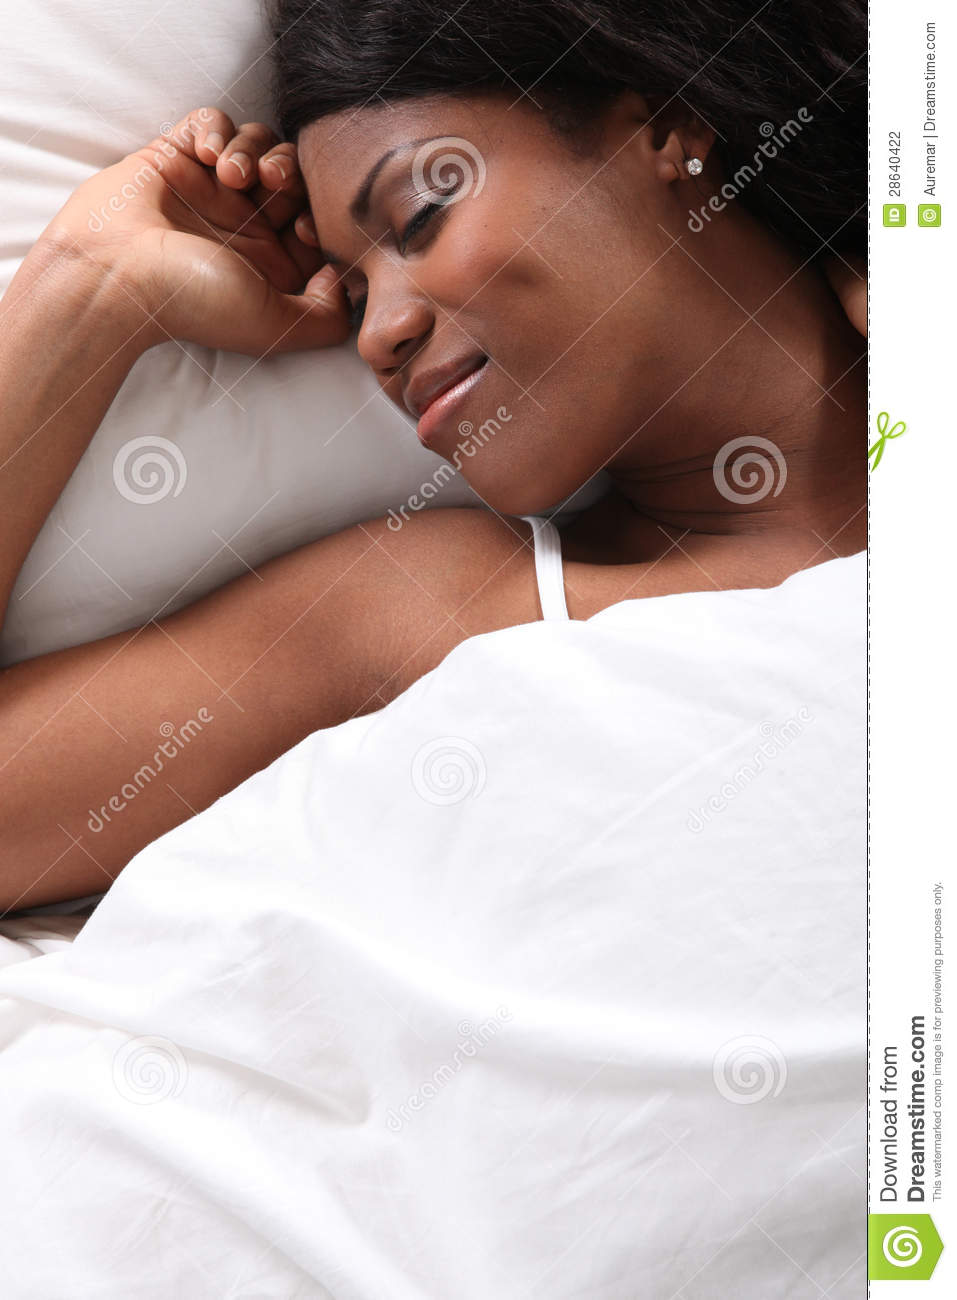 Black Woman Sleeping Stock Photography - Image: 28640422